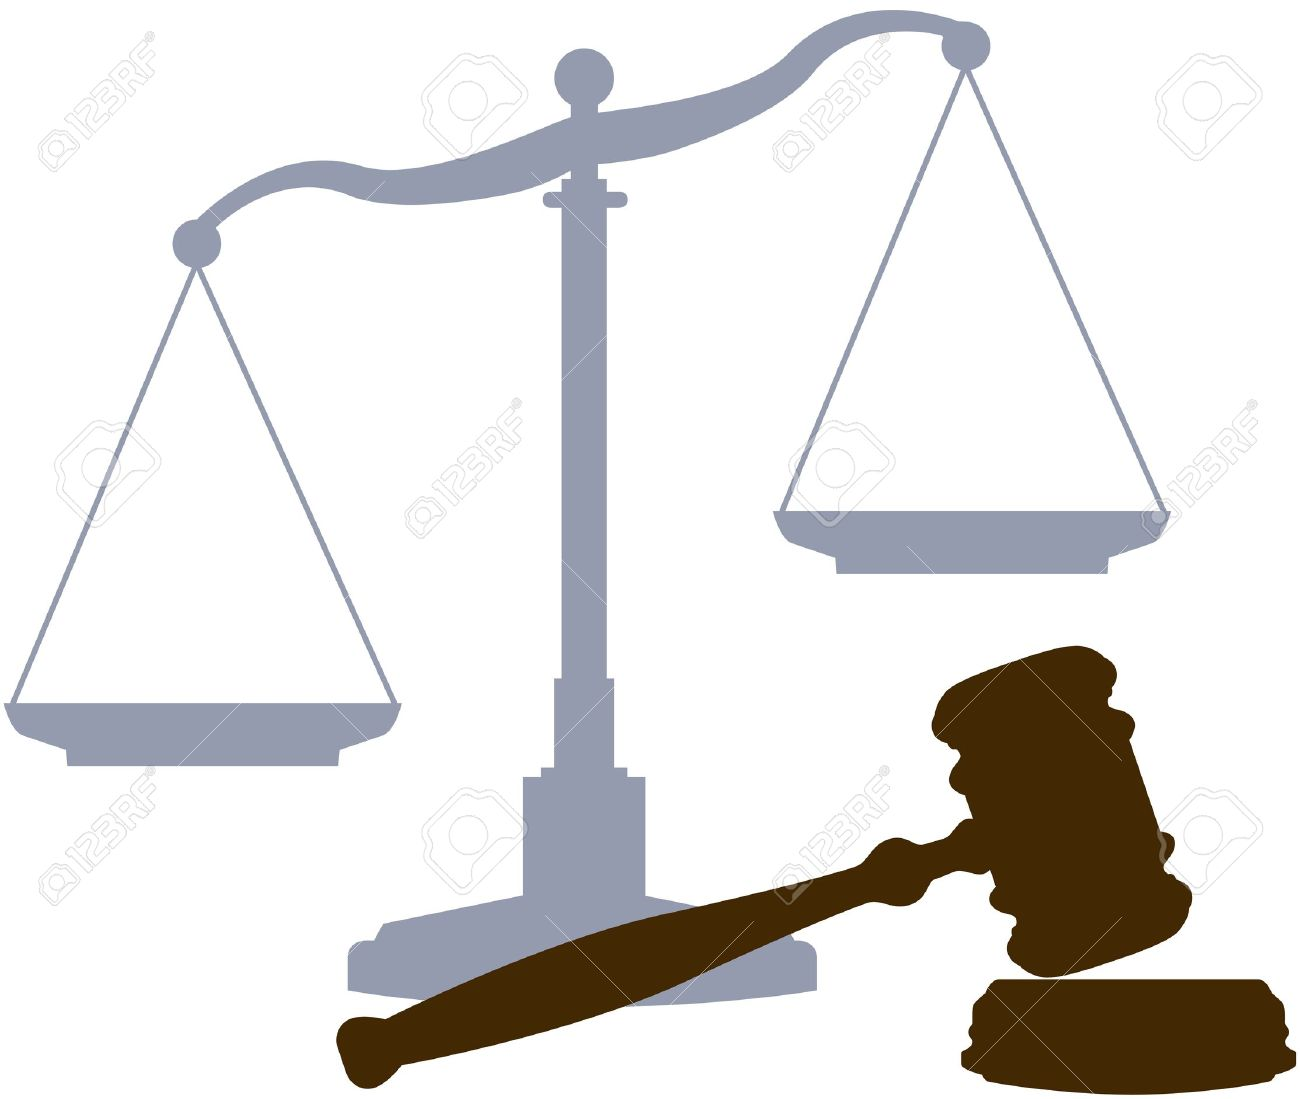 scales and gavel as symbols of the law lawyers and the legal